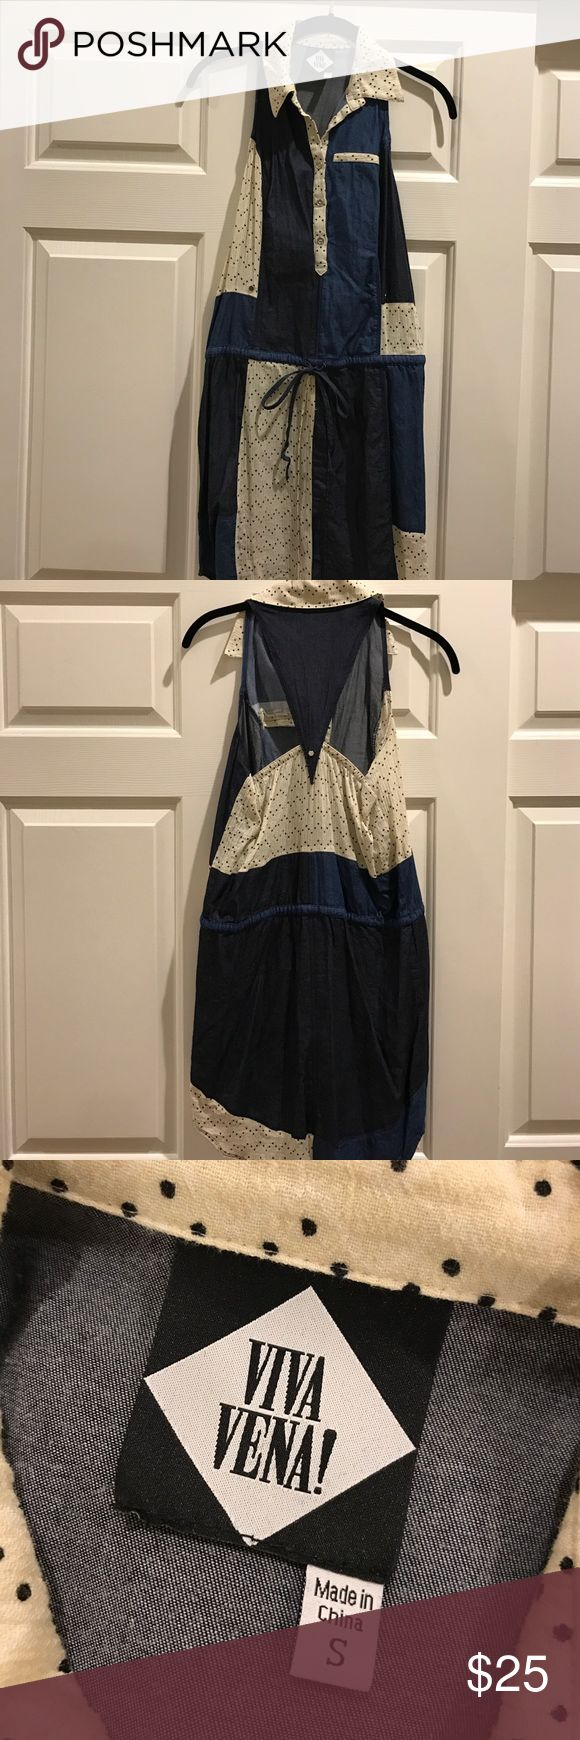 Nordstrom Denim Dress-Small Vina Vena! Denim Dress purchased at Nordstrom and worn only once. Lightweight. Racerback. Drawstring waist. Super soft and cute. Perfect with sandals or boots and any country concert! :) Viva Vina! Dresses Mini